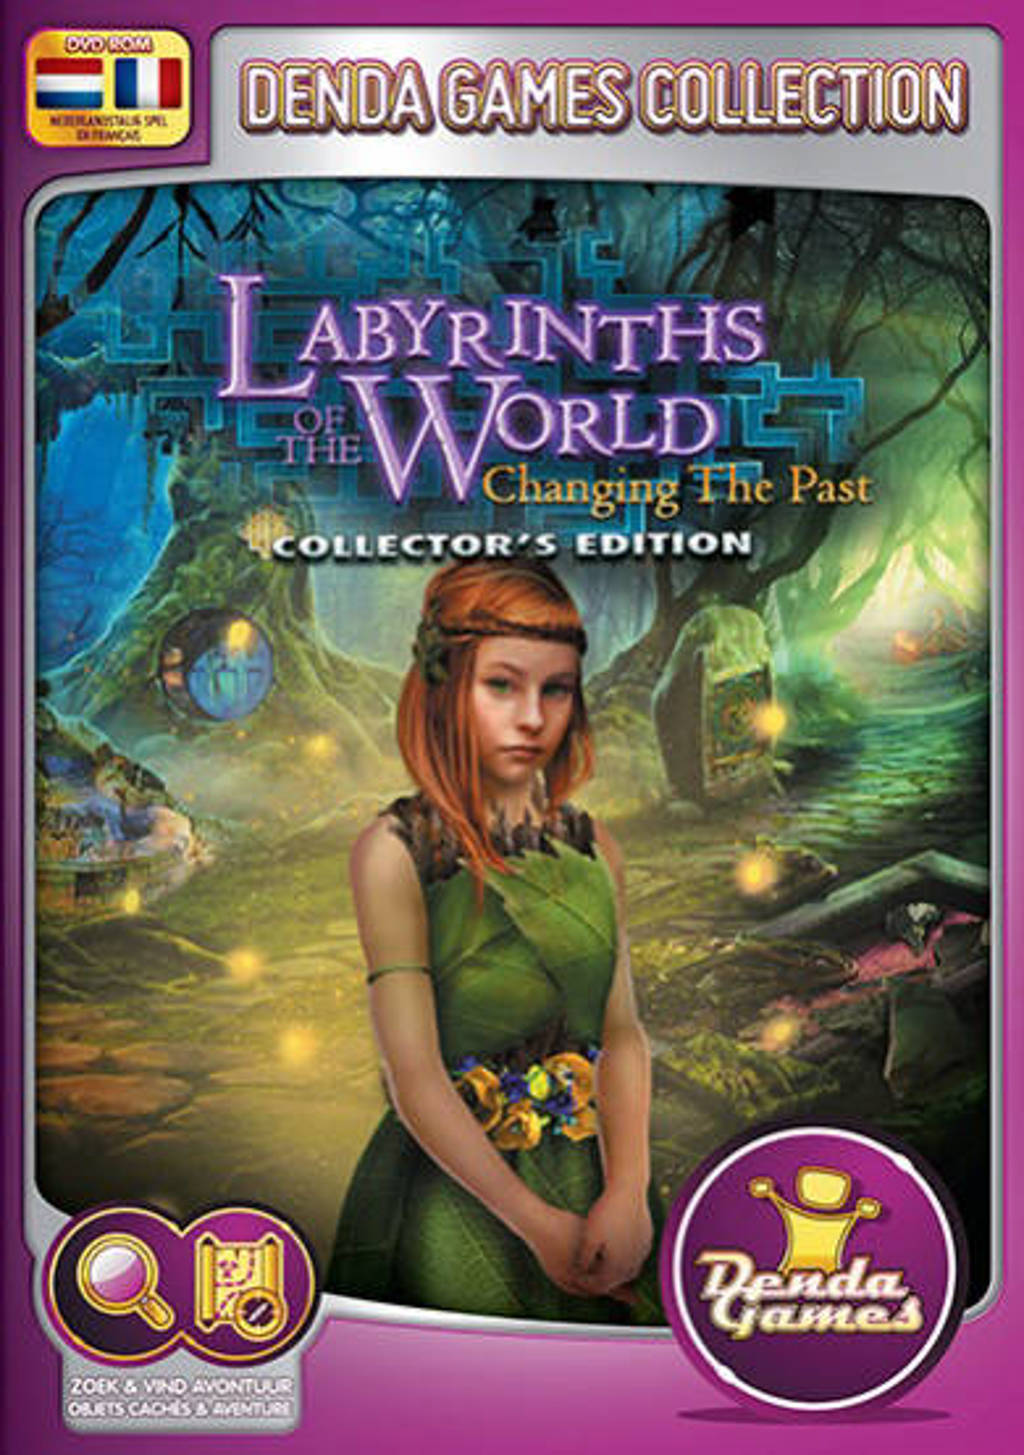 Labyrinths of the world - Changing the past (Collectors edition) (PC)